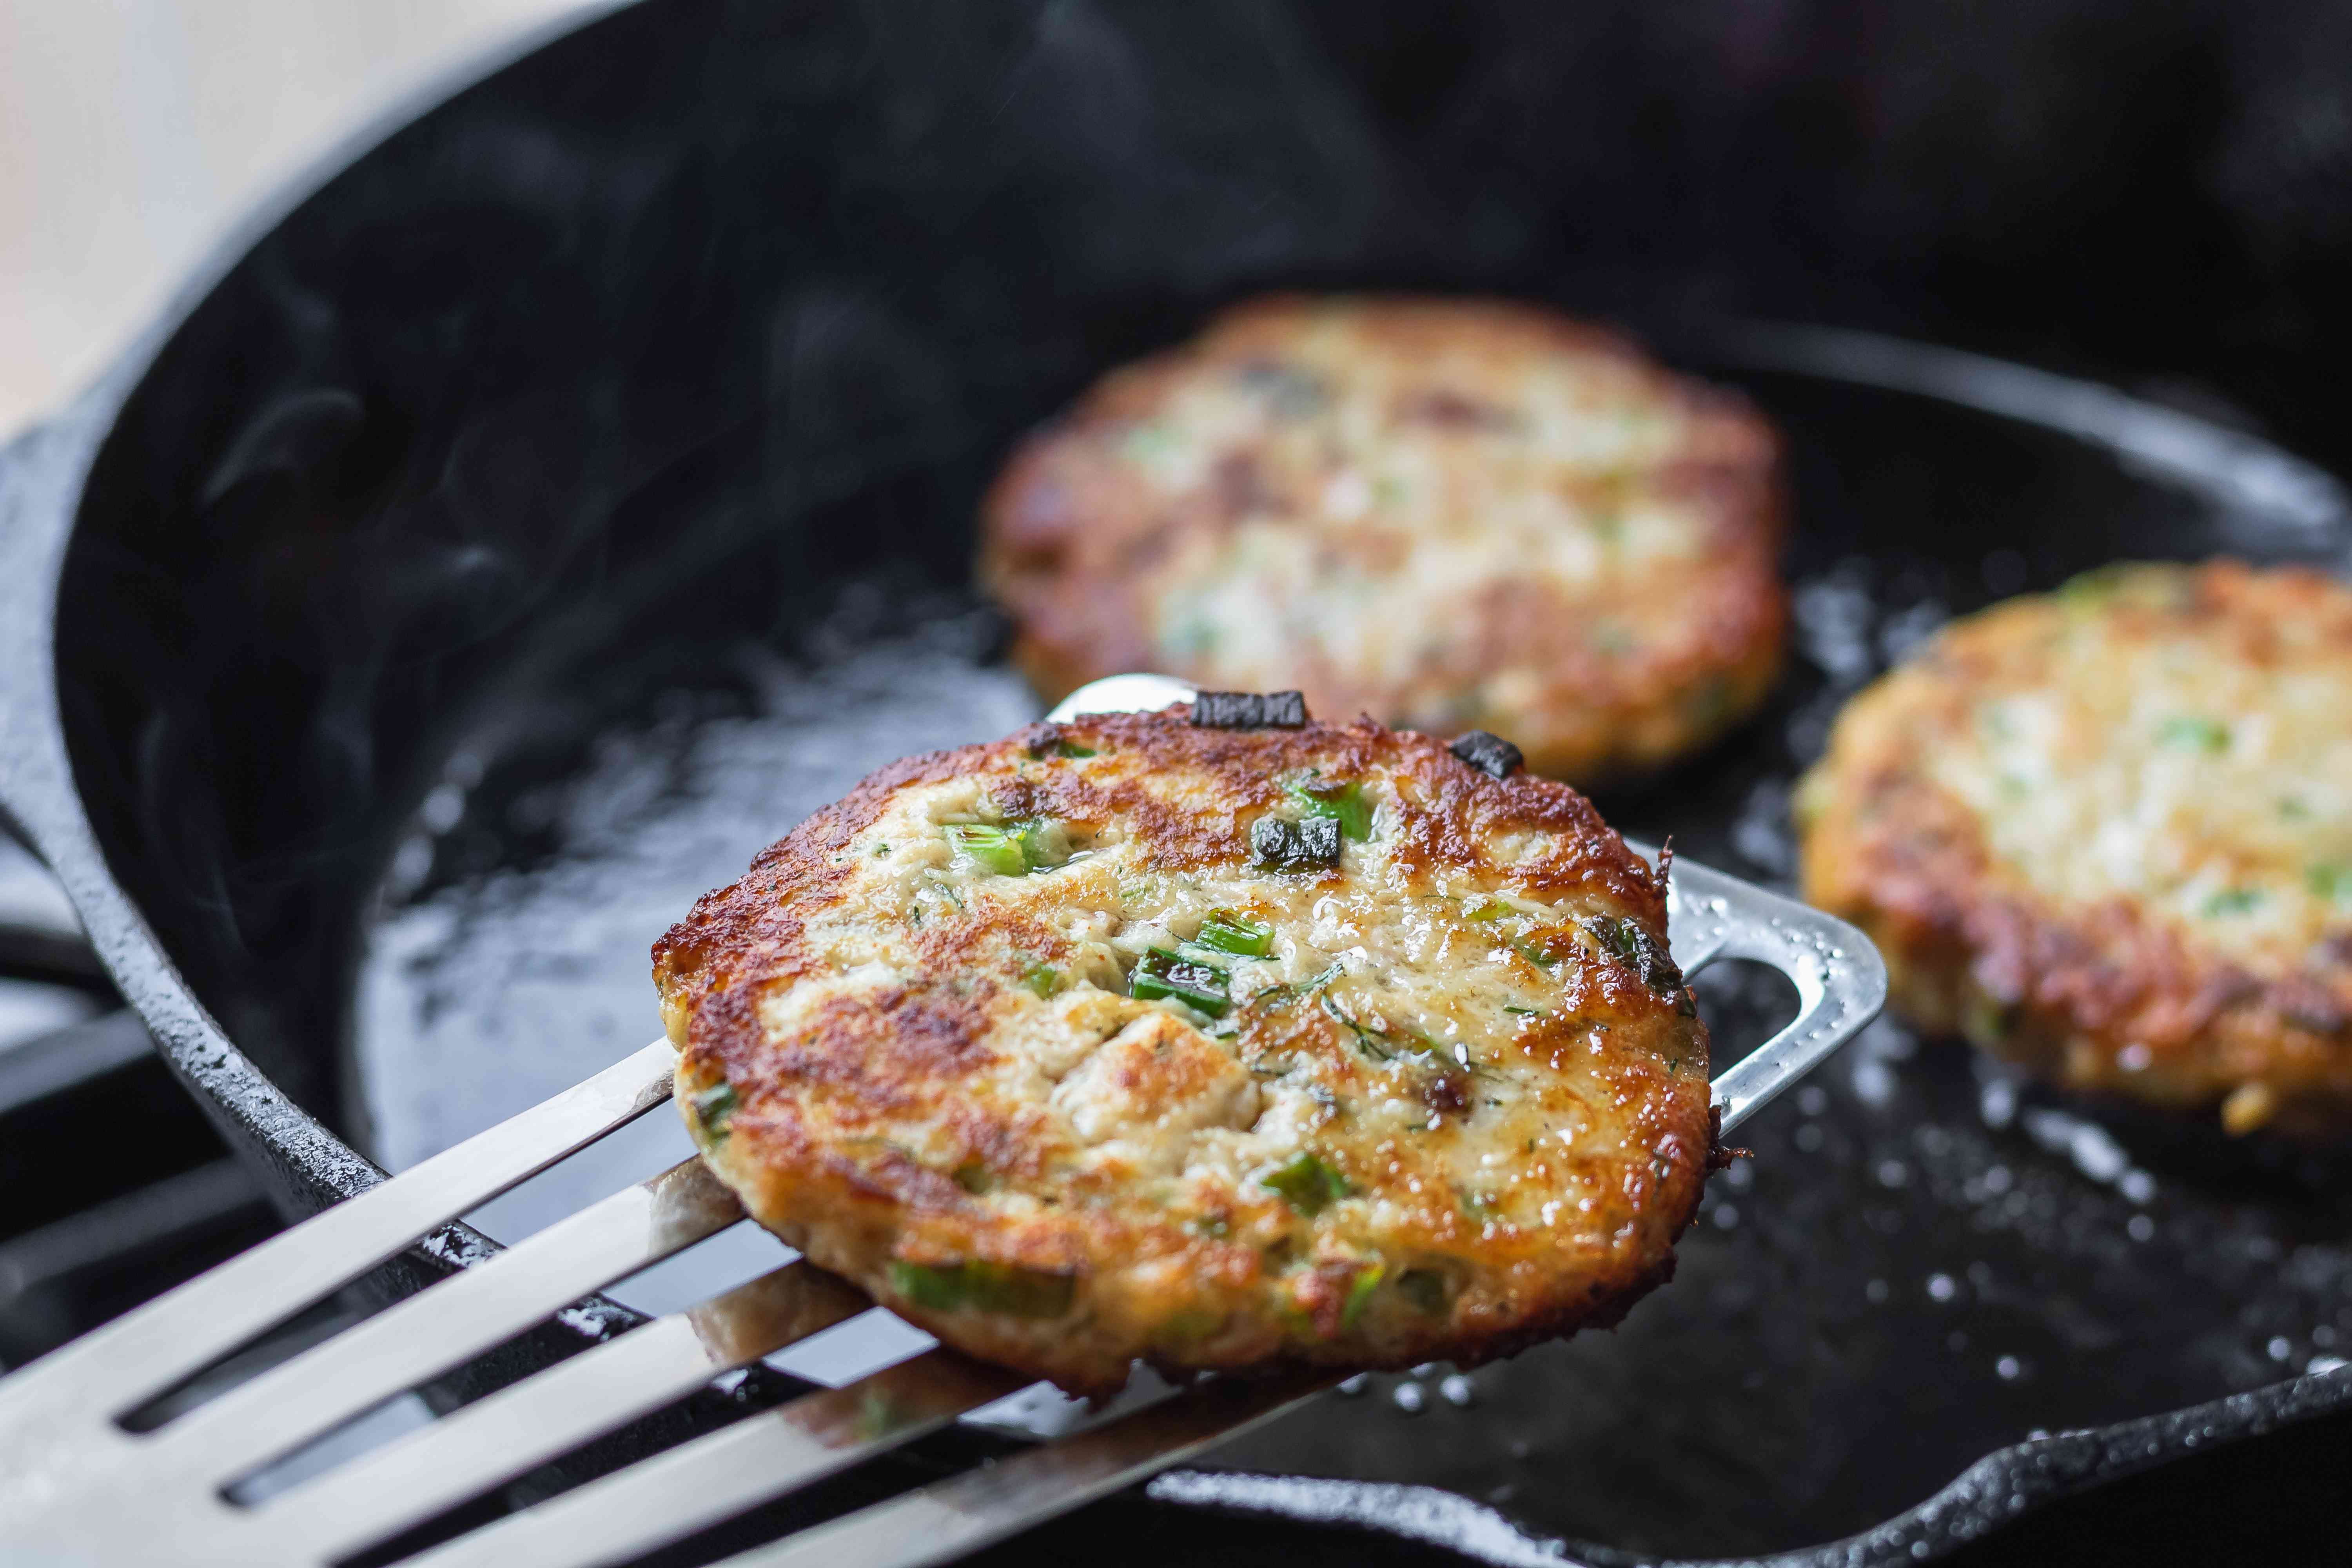 How to make salmon cakes and lifting the pan fried cakes out of the pan.